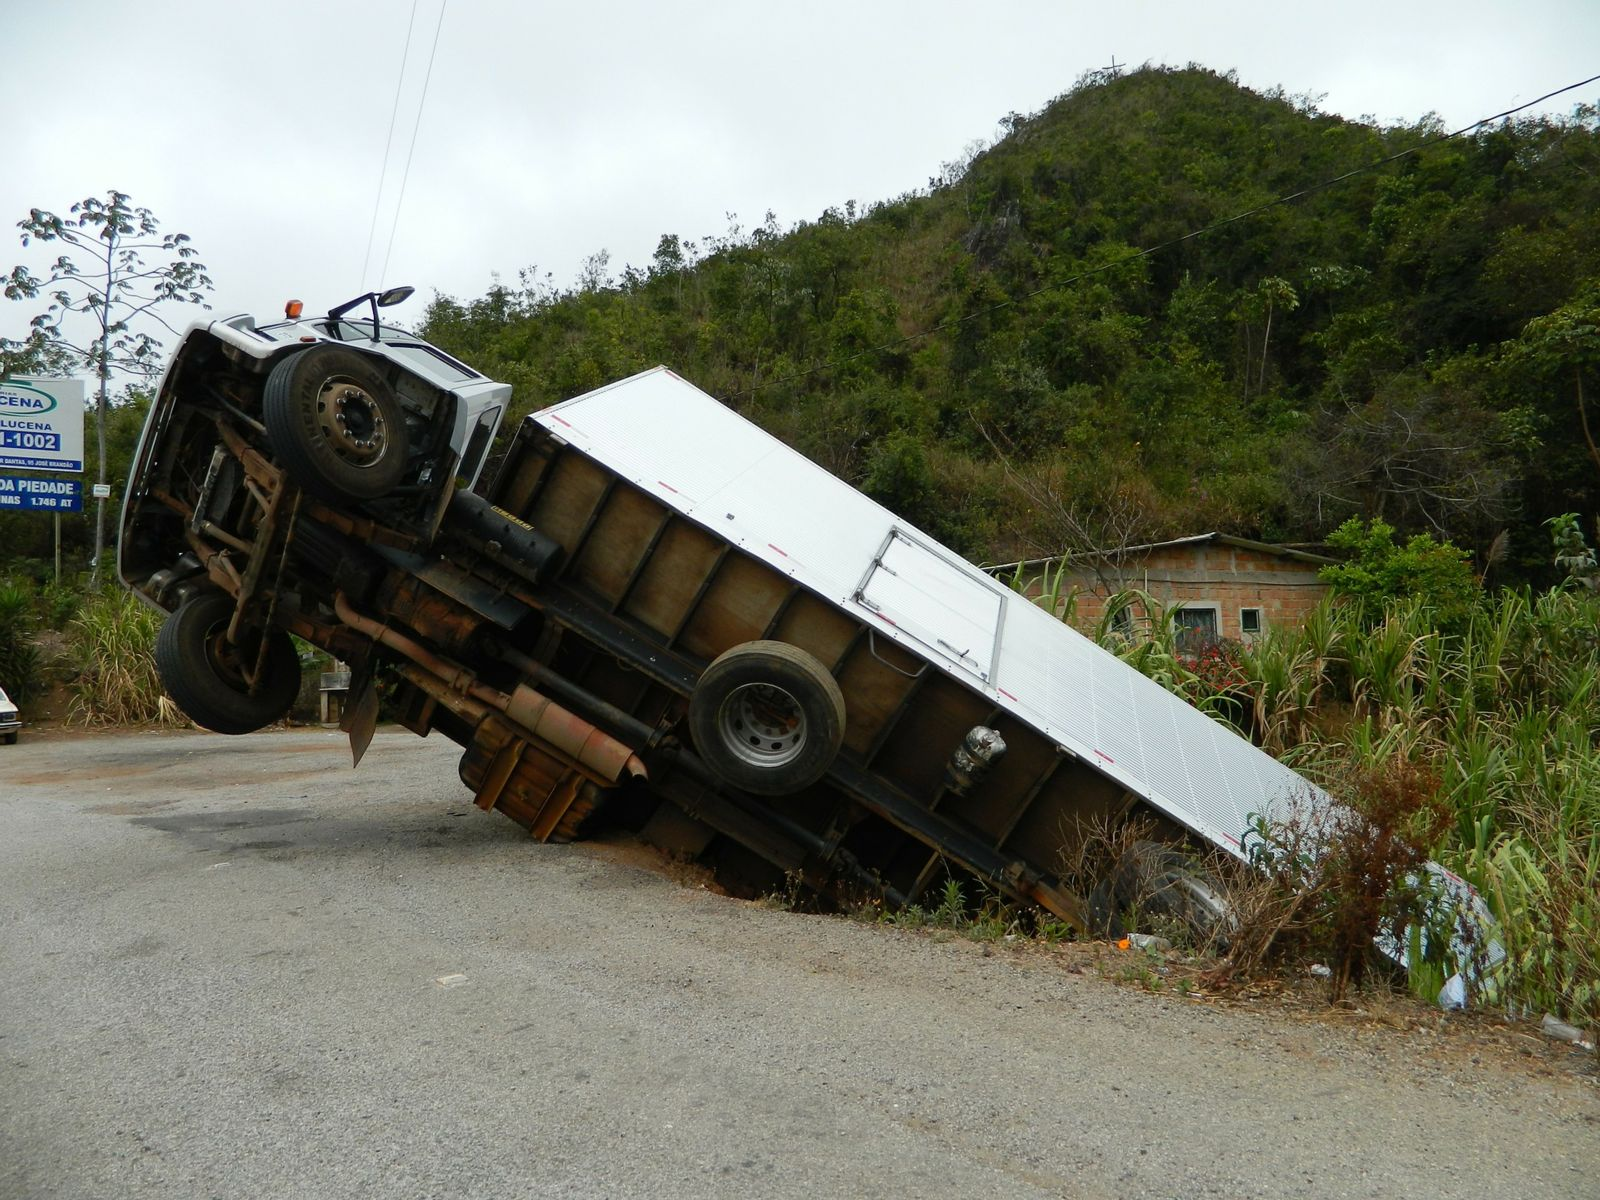 Some Truck Crashes Are Caused by Driver Fatigue